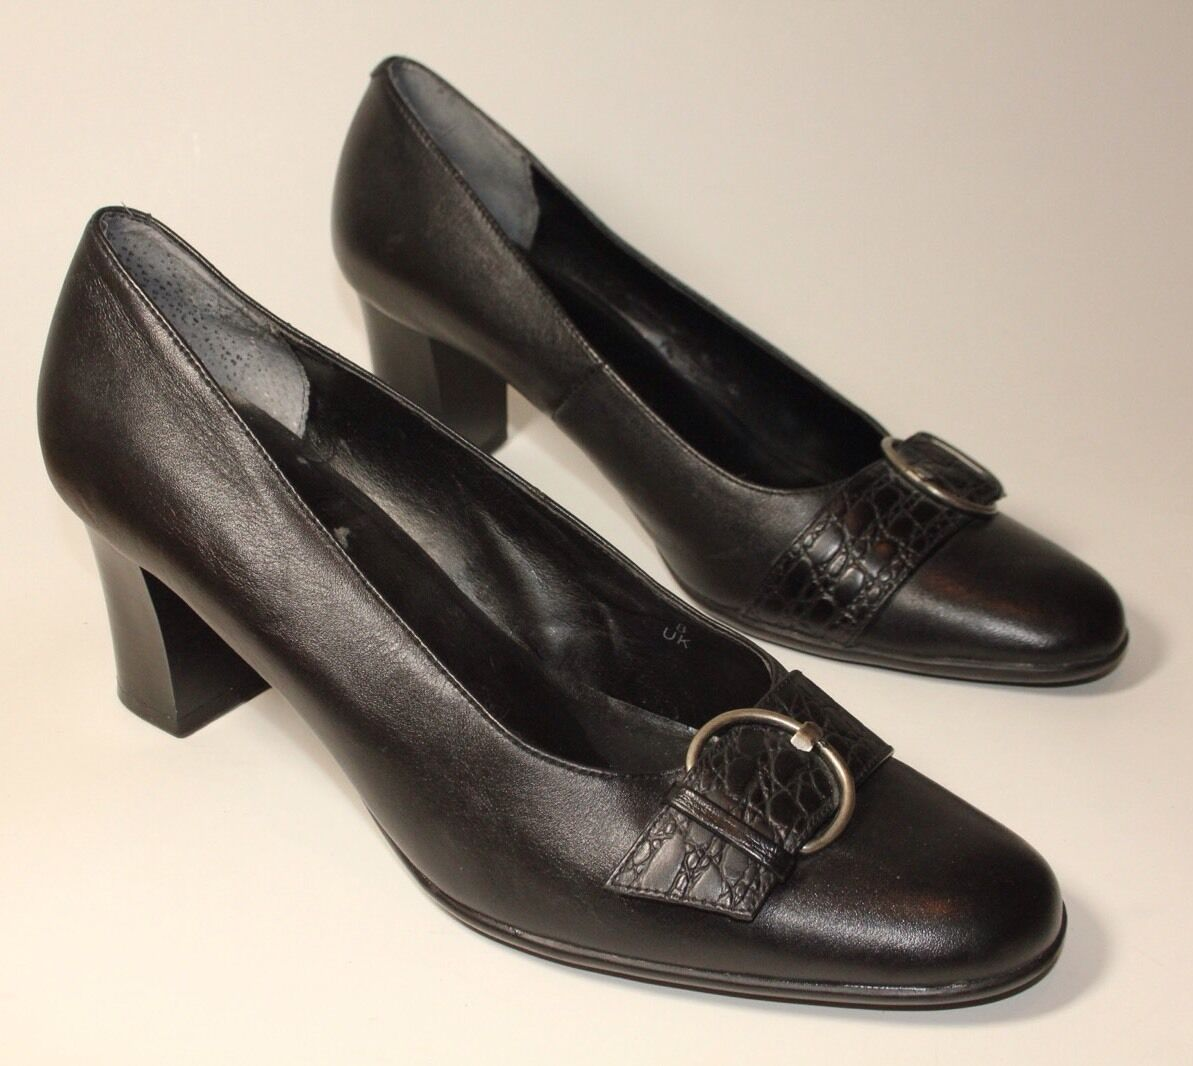 Footglove womens black leather mid heel shoes uk 8 worn once